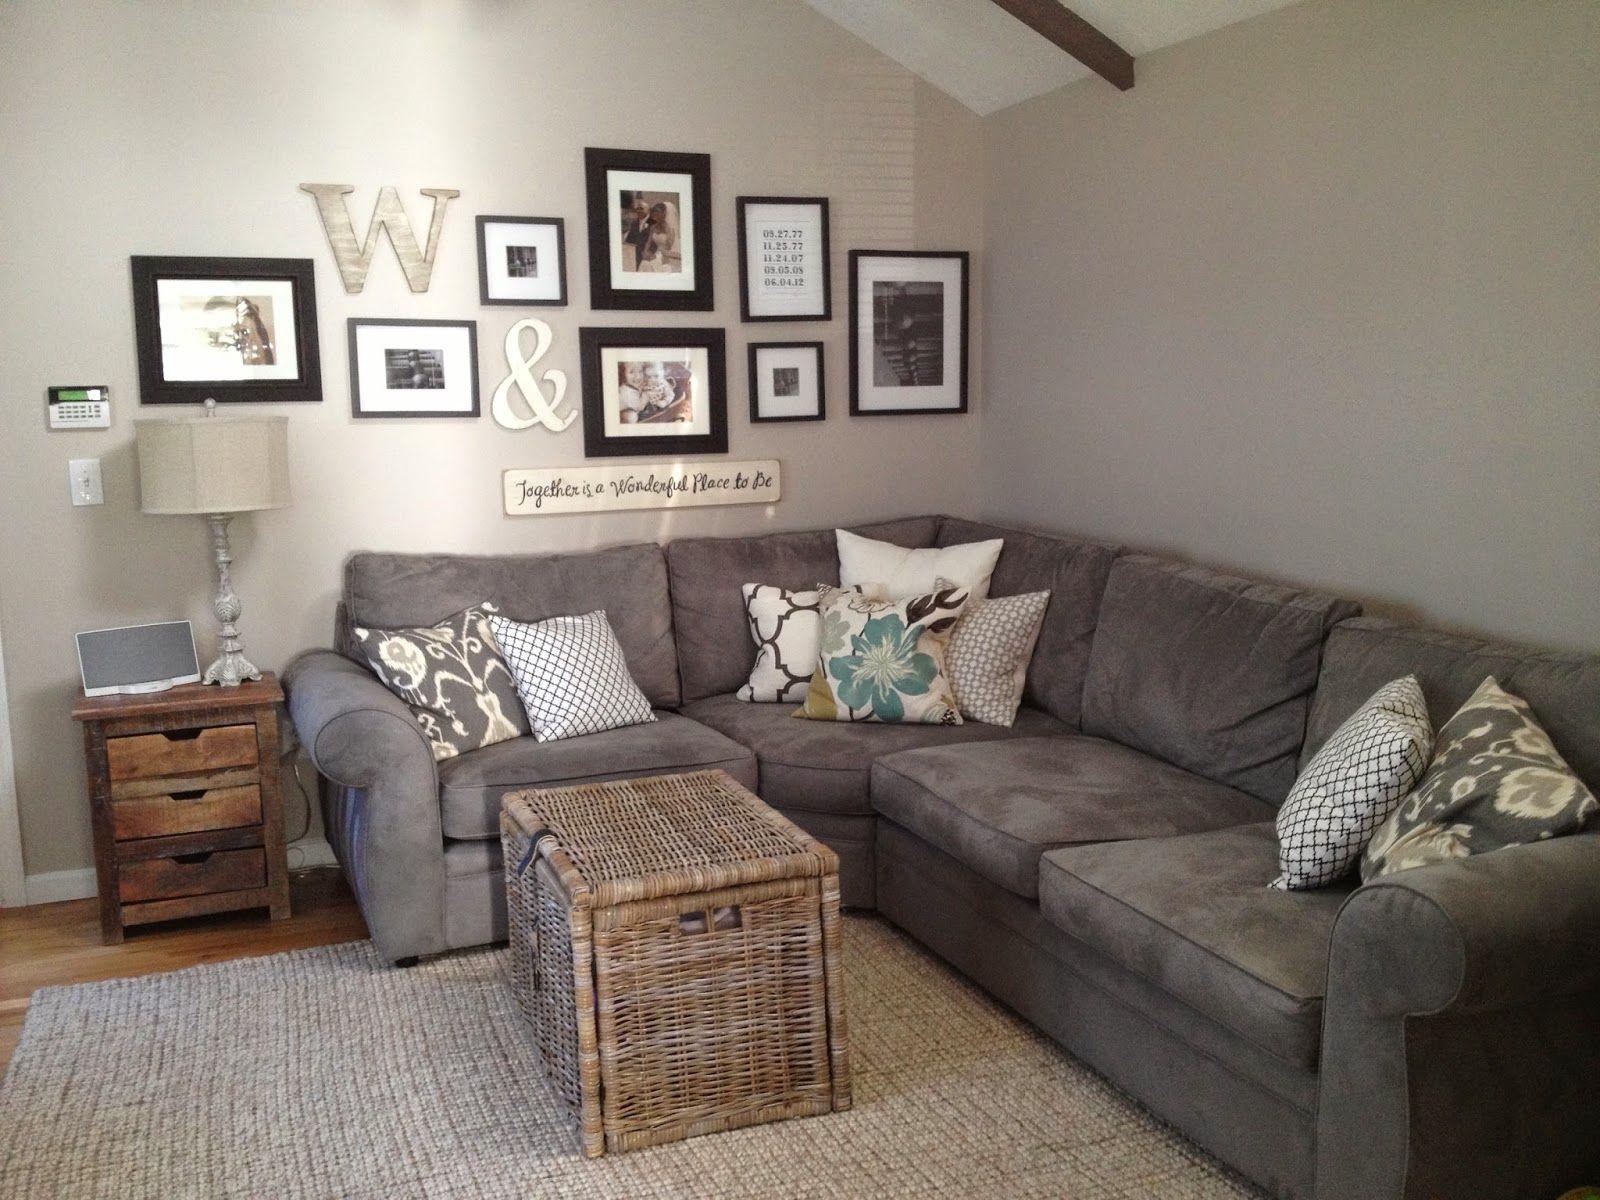 Gray Couch Living Room Decor Decorating A With Fireplace And Tv Inspire Me Please Linky Party Walls Pinterest 35 Idle Home Ideas Grey Gallery Wall